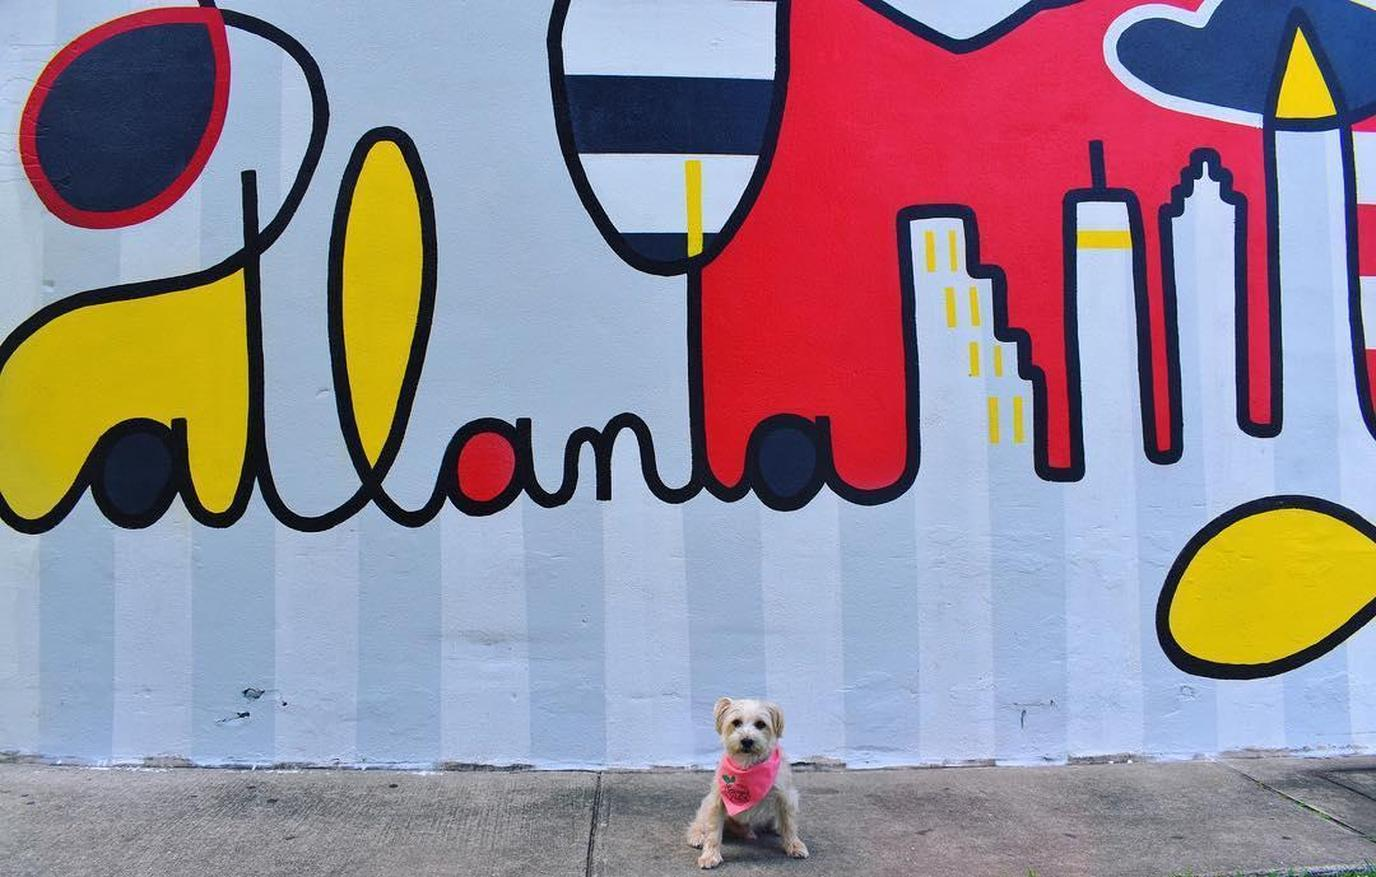 Posing in front of The BeltLine wall mural in Atlanta.